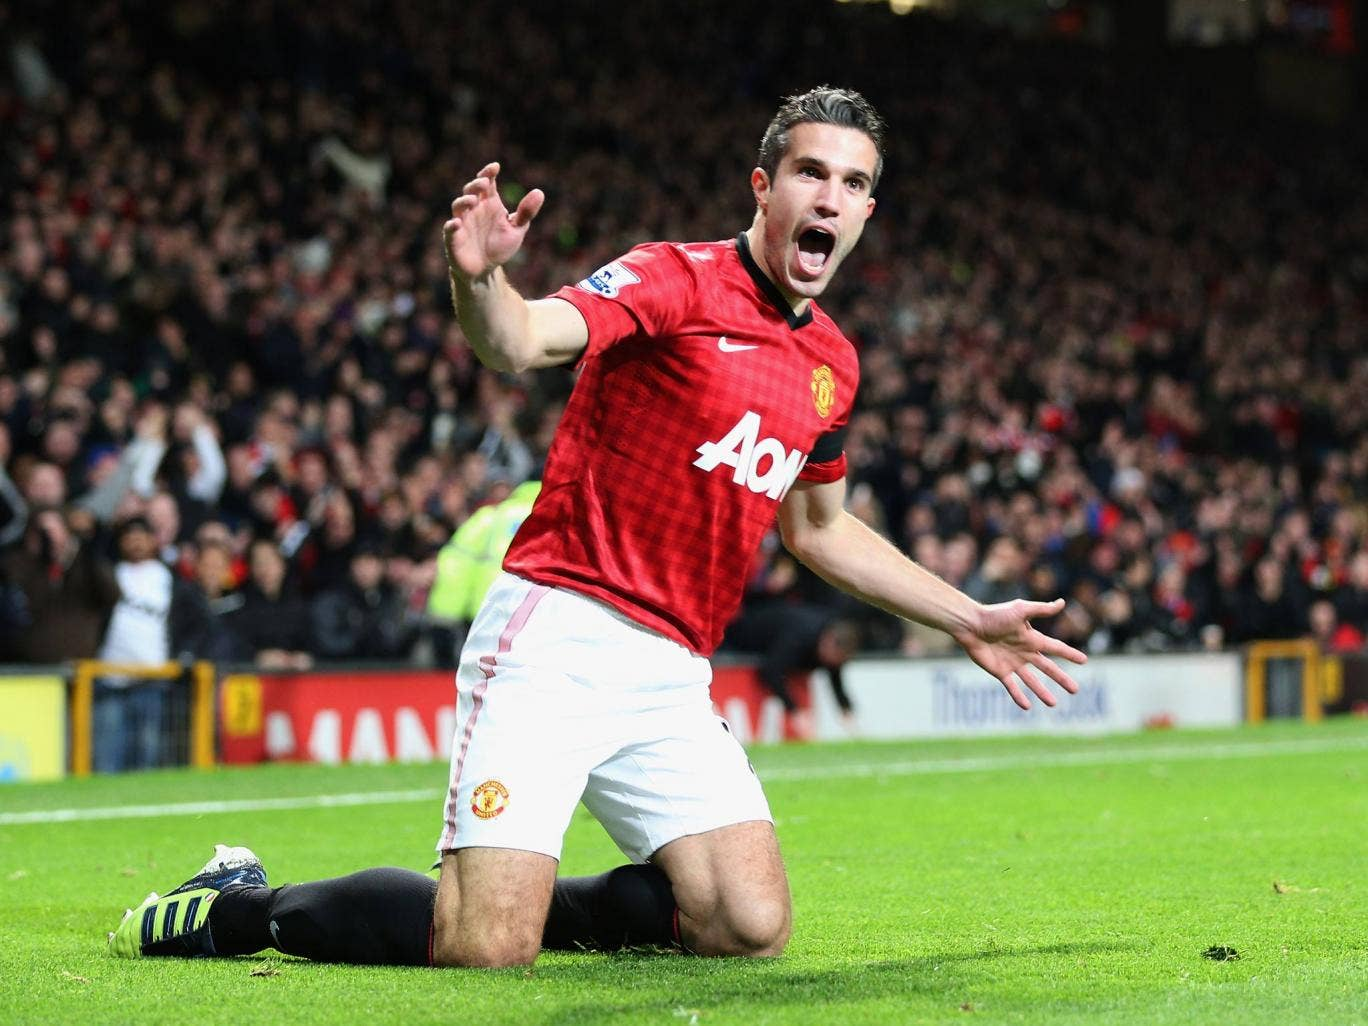 <b>Manchester United 1-0 West Ham United</b><br/> <b>28 November 2012</b><br/> <b>Premier League</b><br/>   Van Persie scored the fastest Premier League goal of the season which proved to be enough to beat West Ham at Old Trafford. The Dutchman scored his